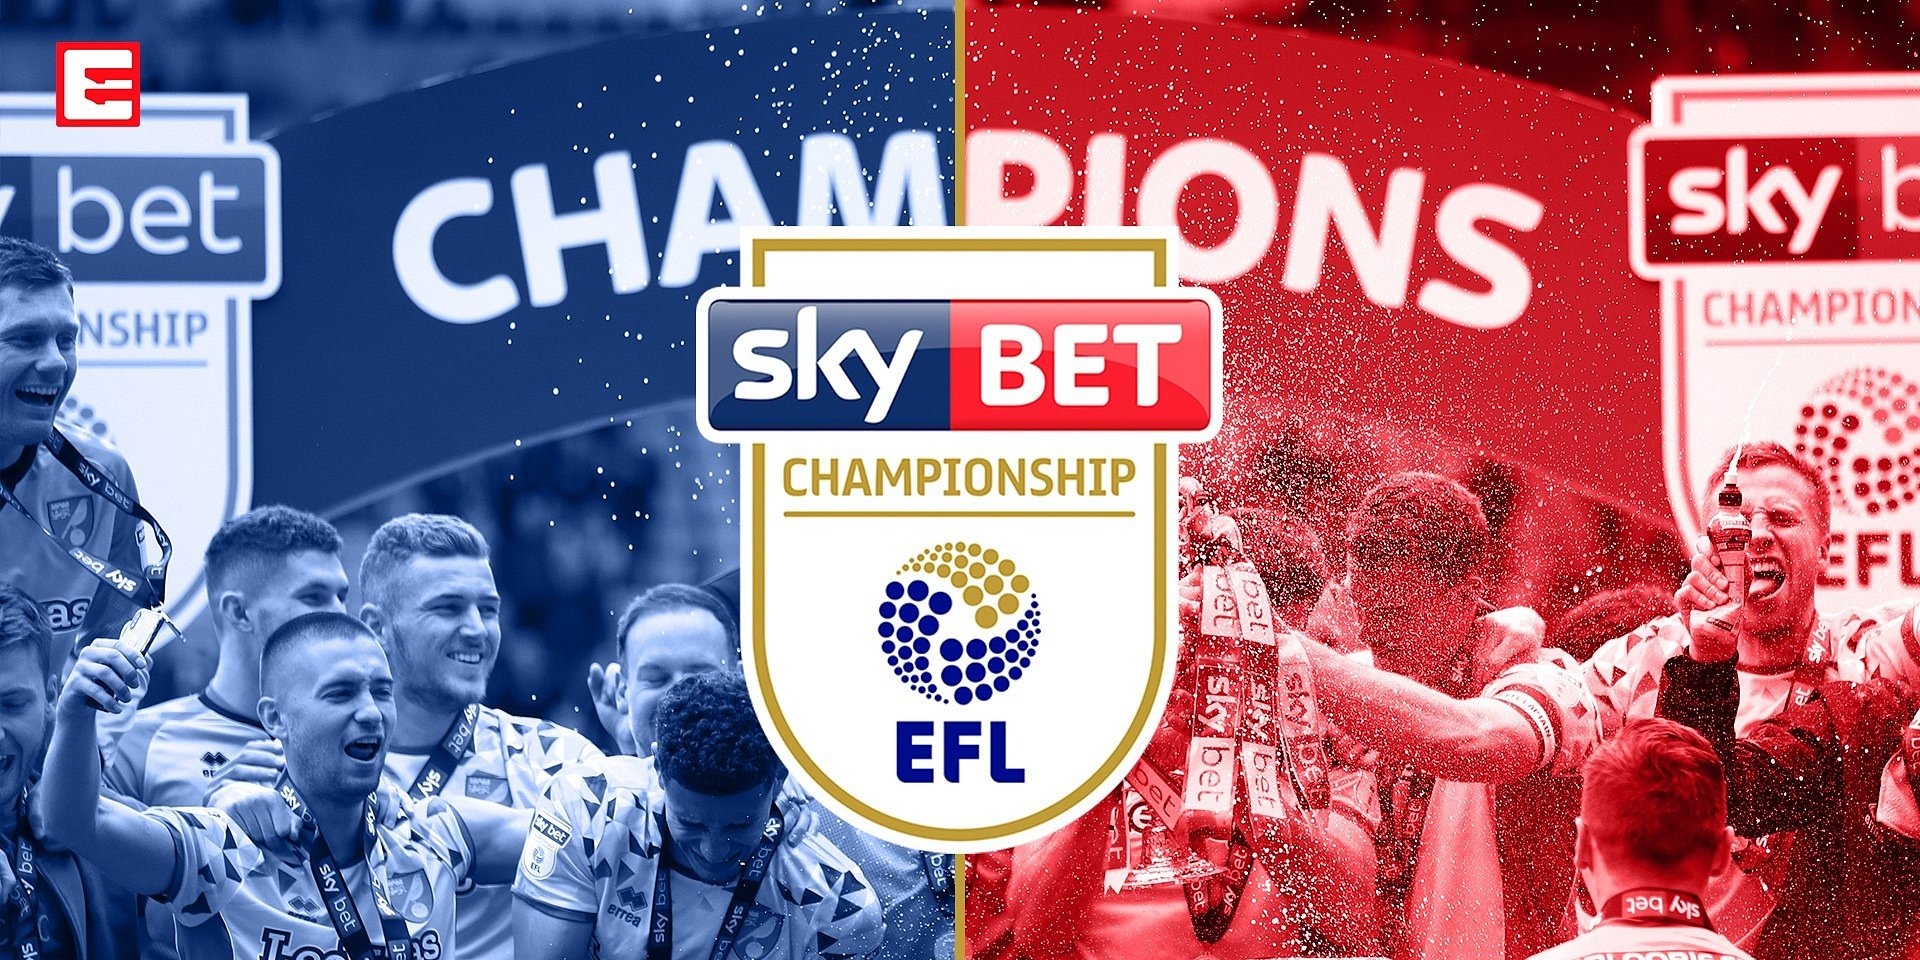 Eleven Sports garante direitos da English Football League - The Championship